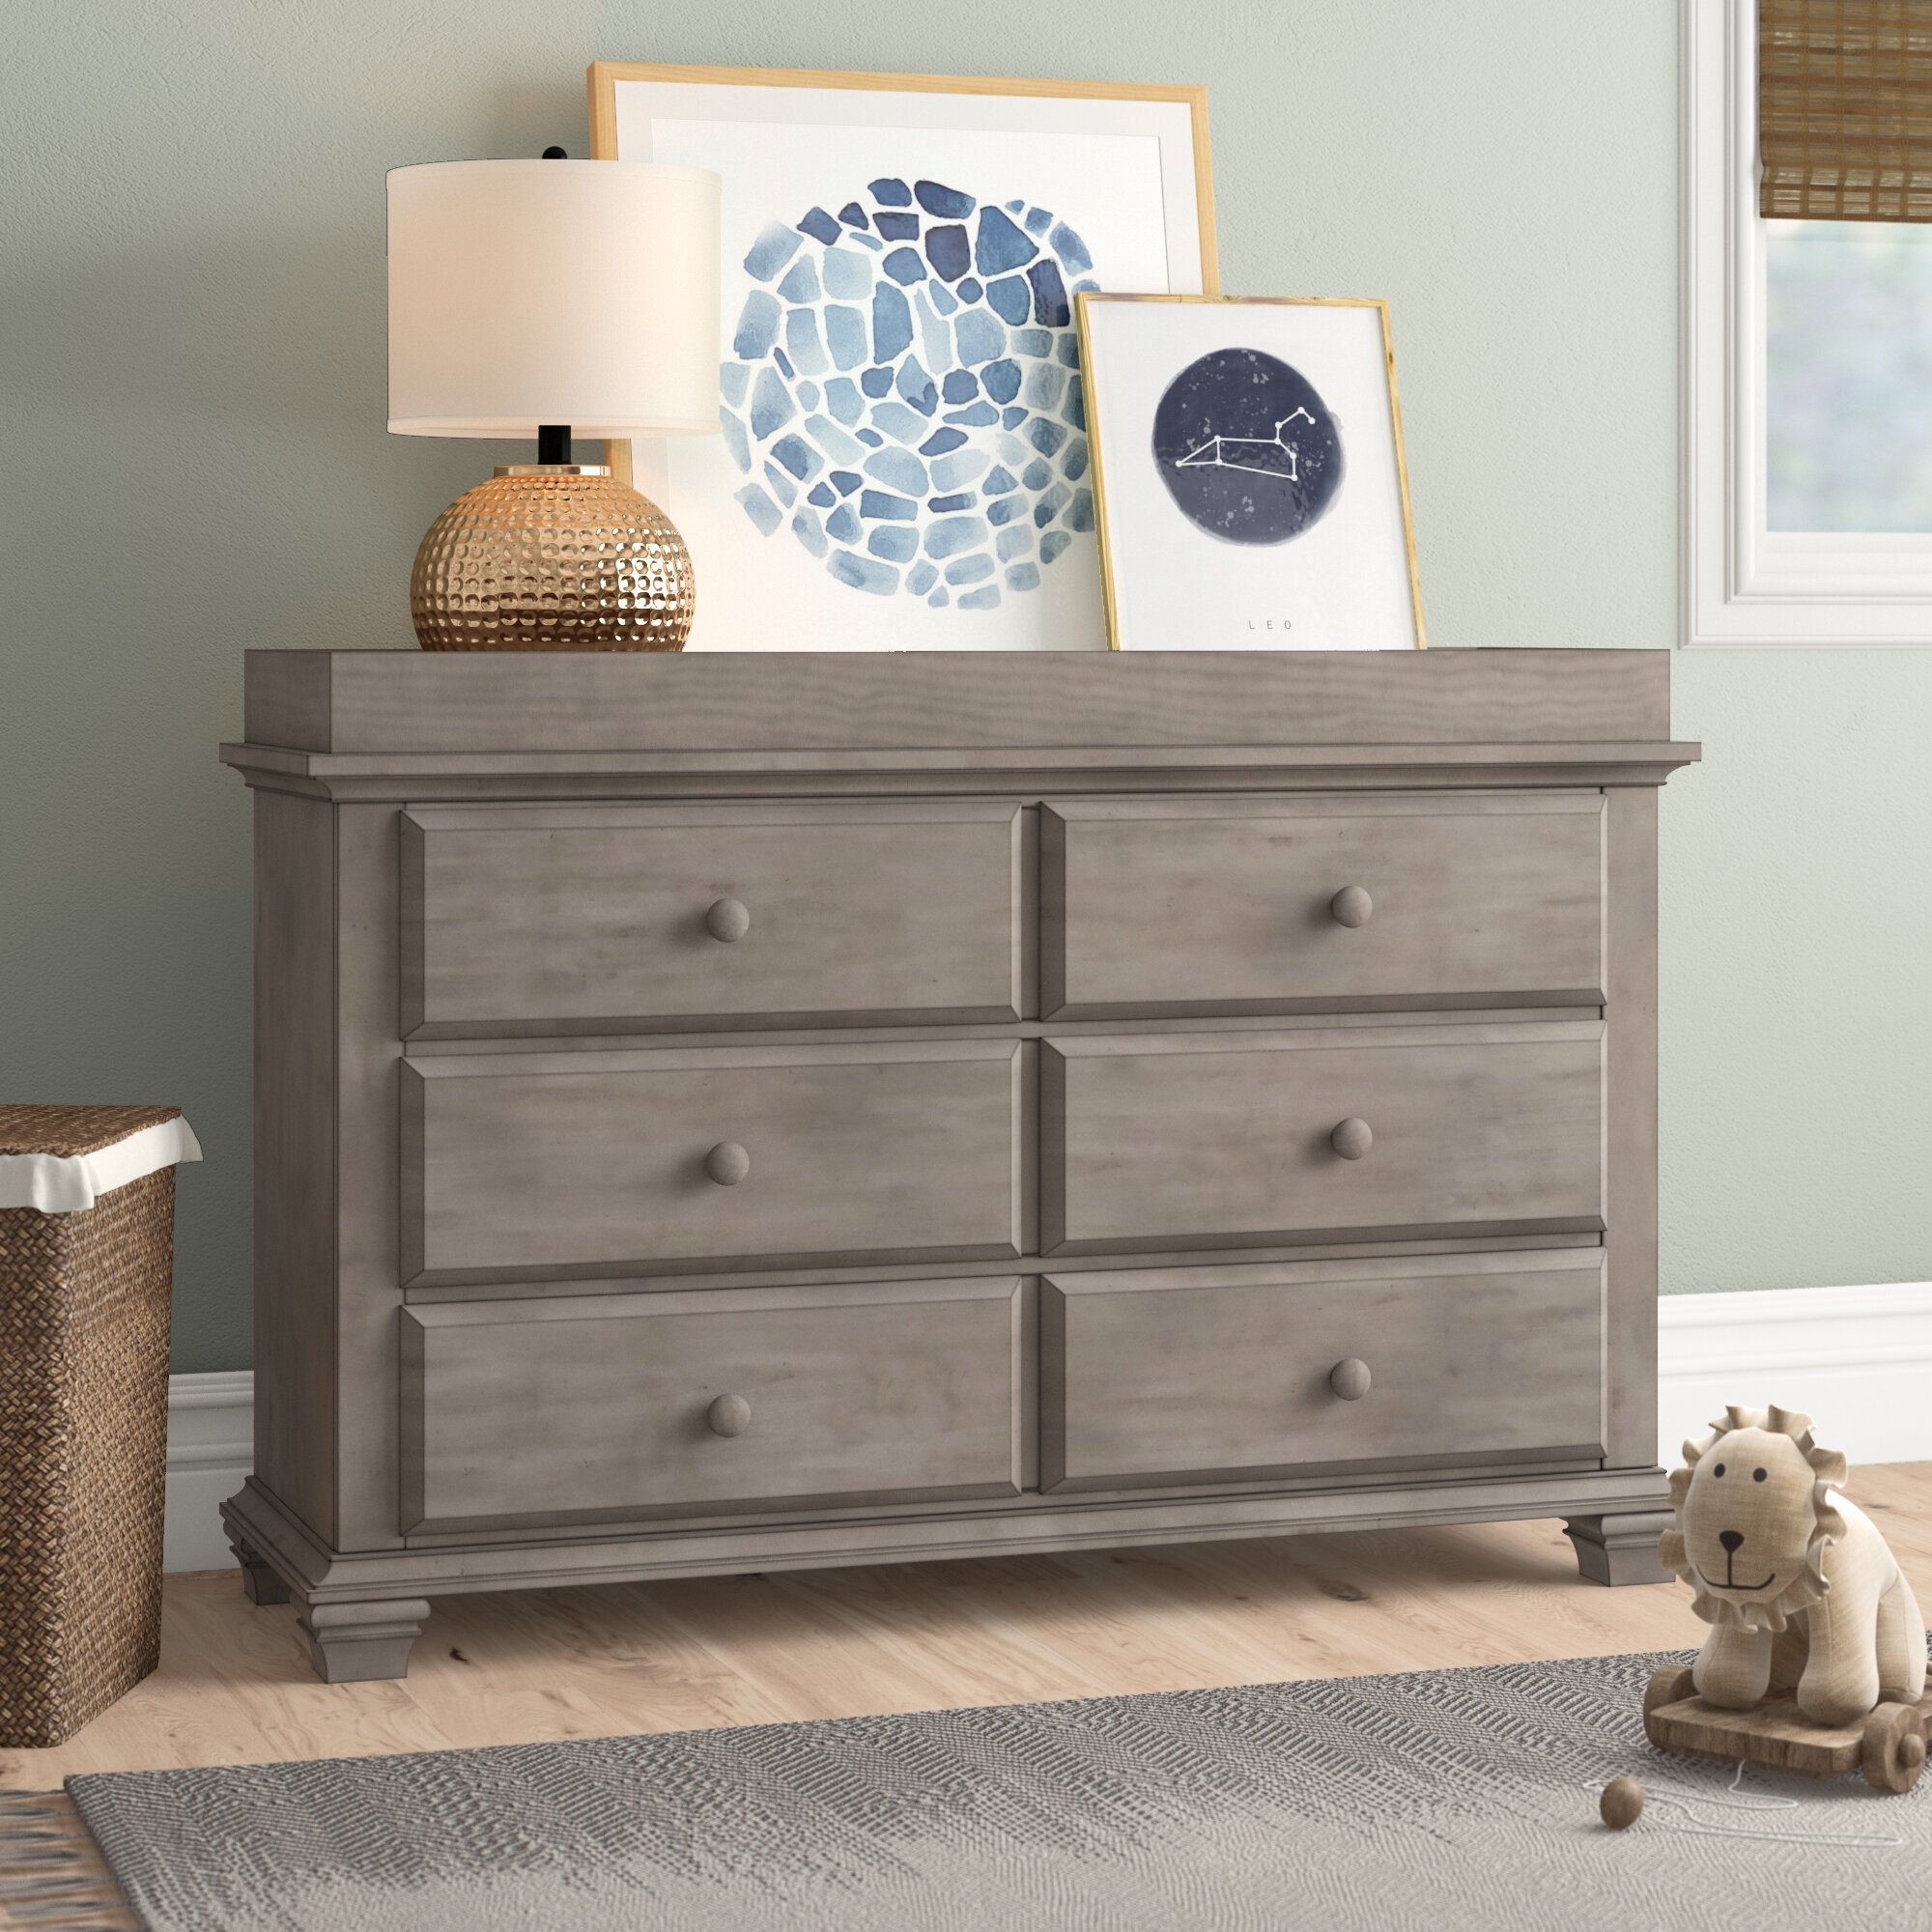 One size Fisher-Price Signature 6-Drawer Double Dresser Country Brown